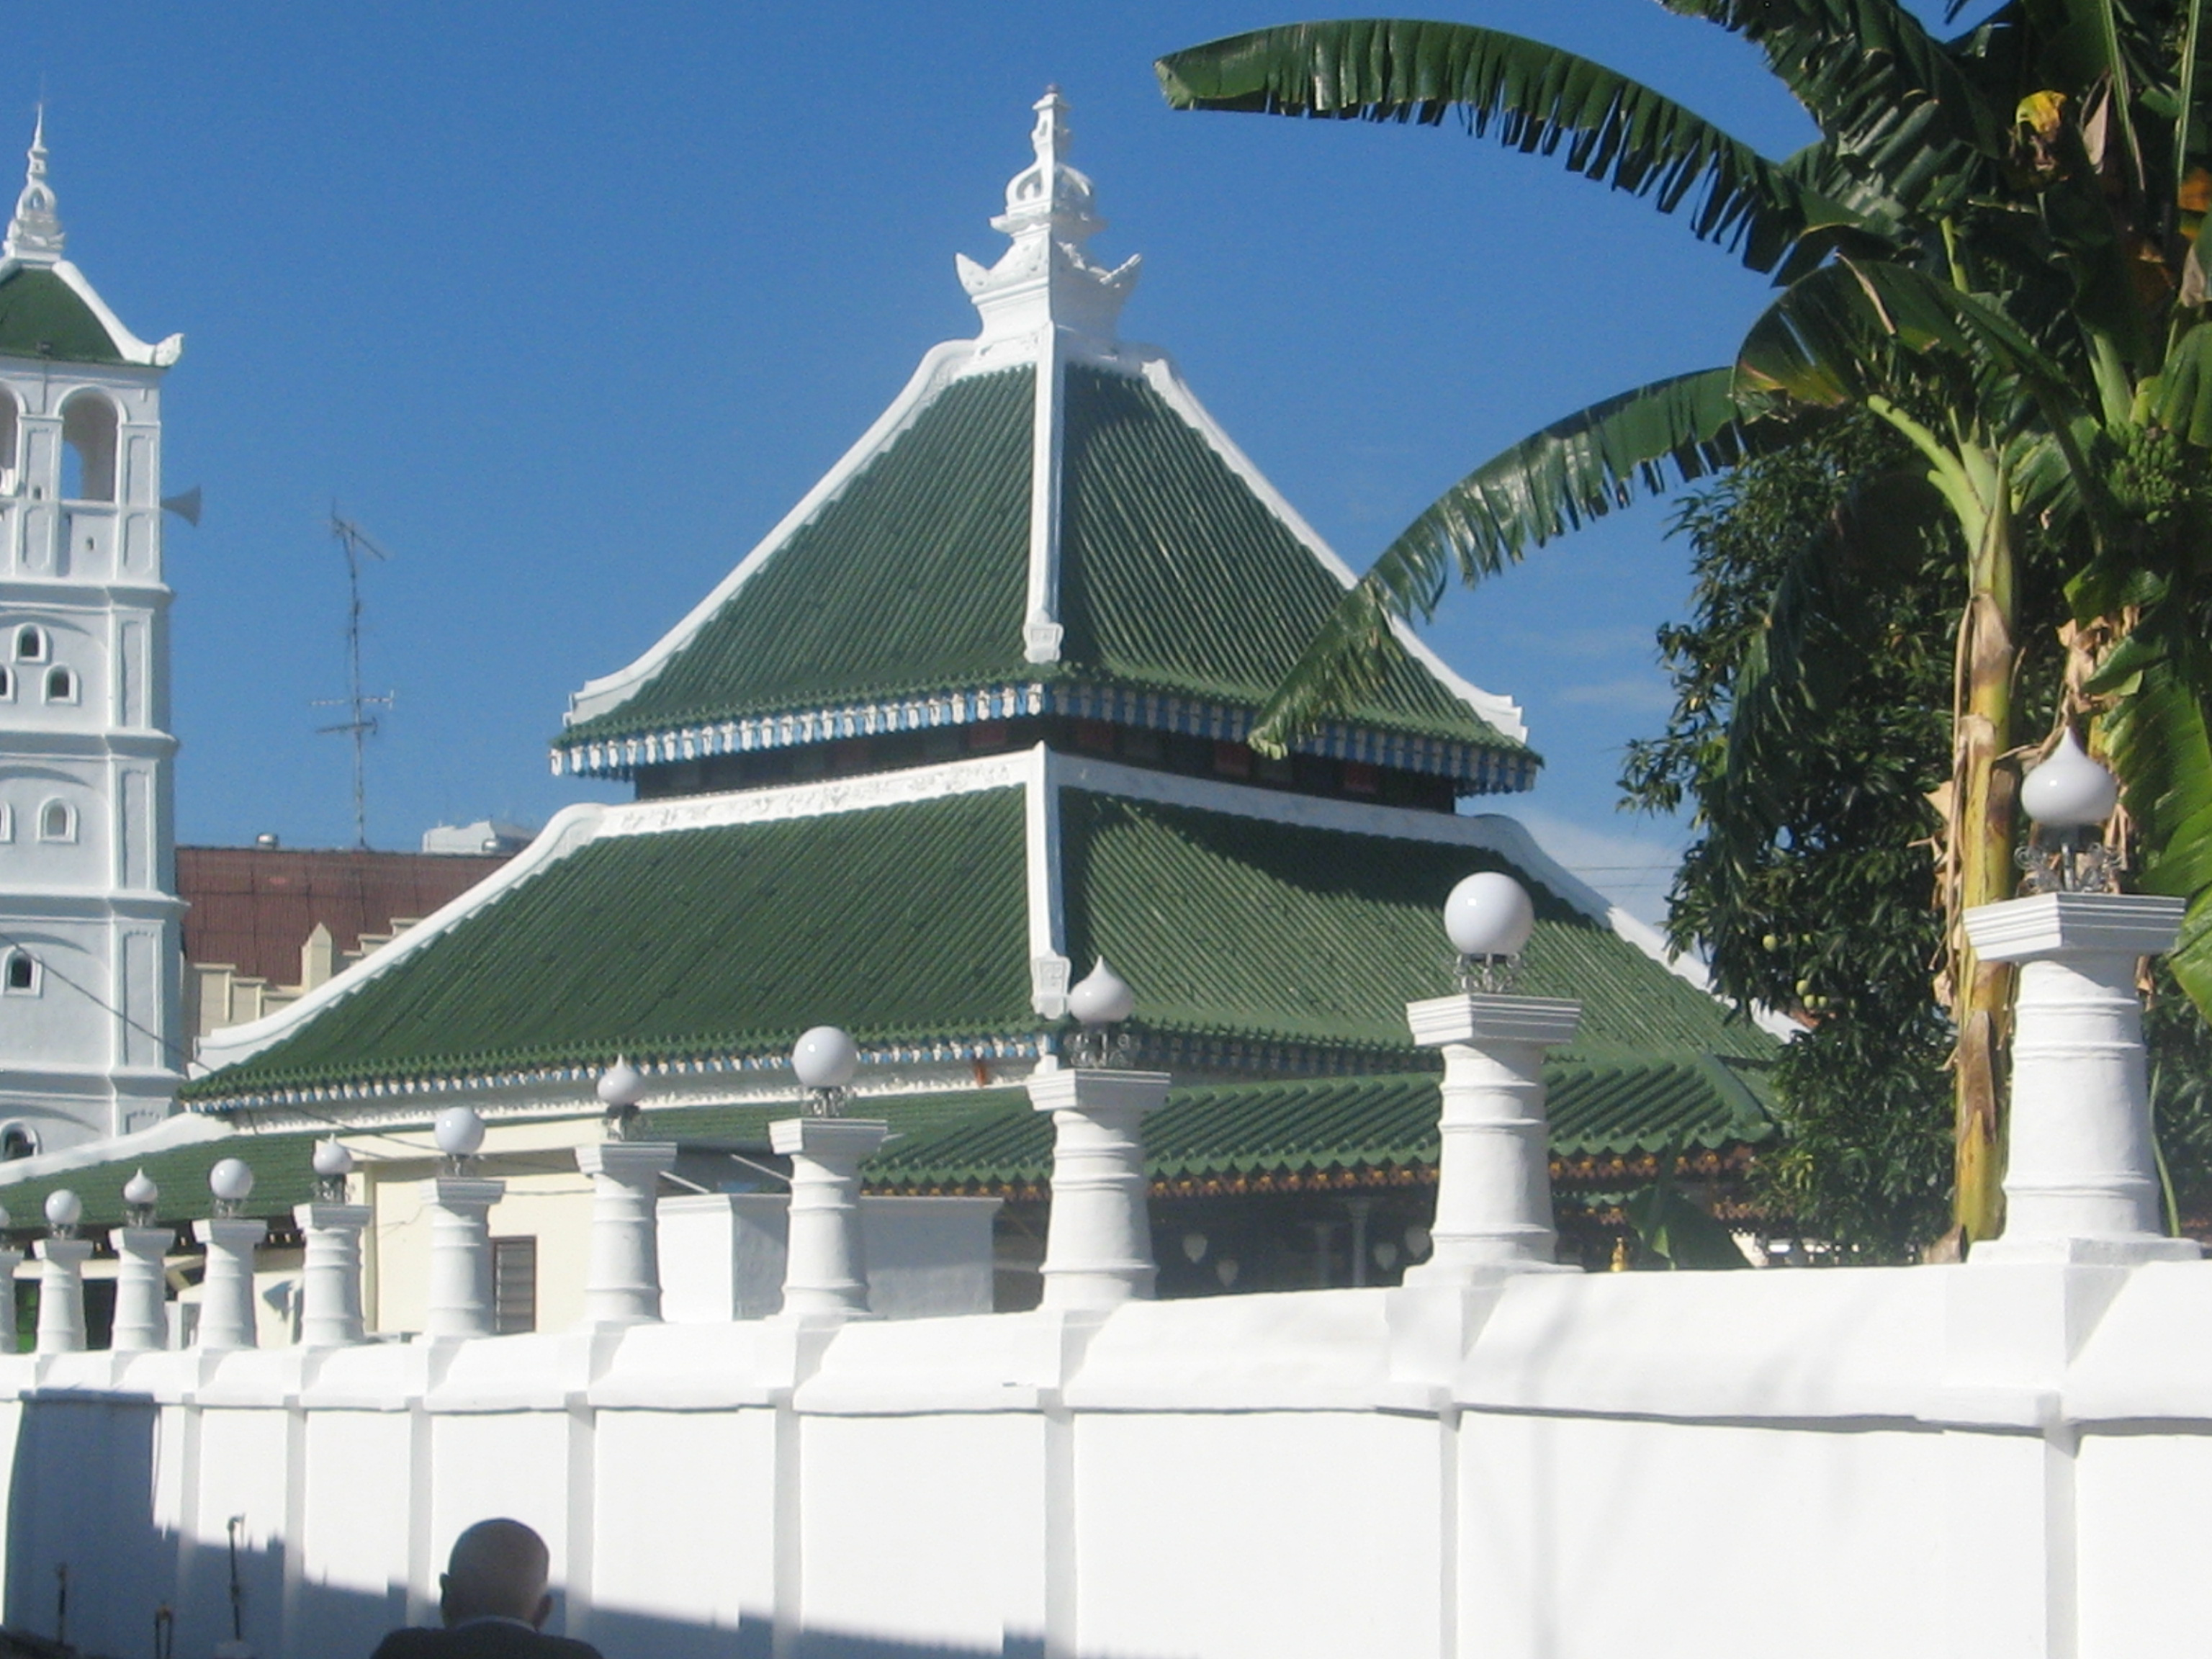 essay on modern architecture Modern architects believed that new conditions of lifestyles and technology  should be given a fresh interpretation, rather than being forced into the forms of.